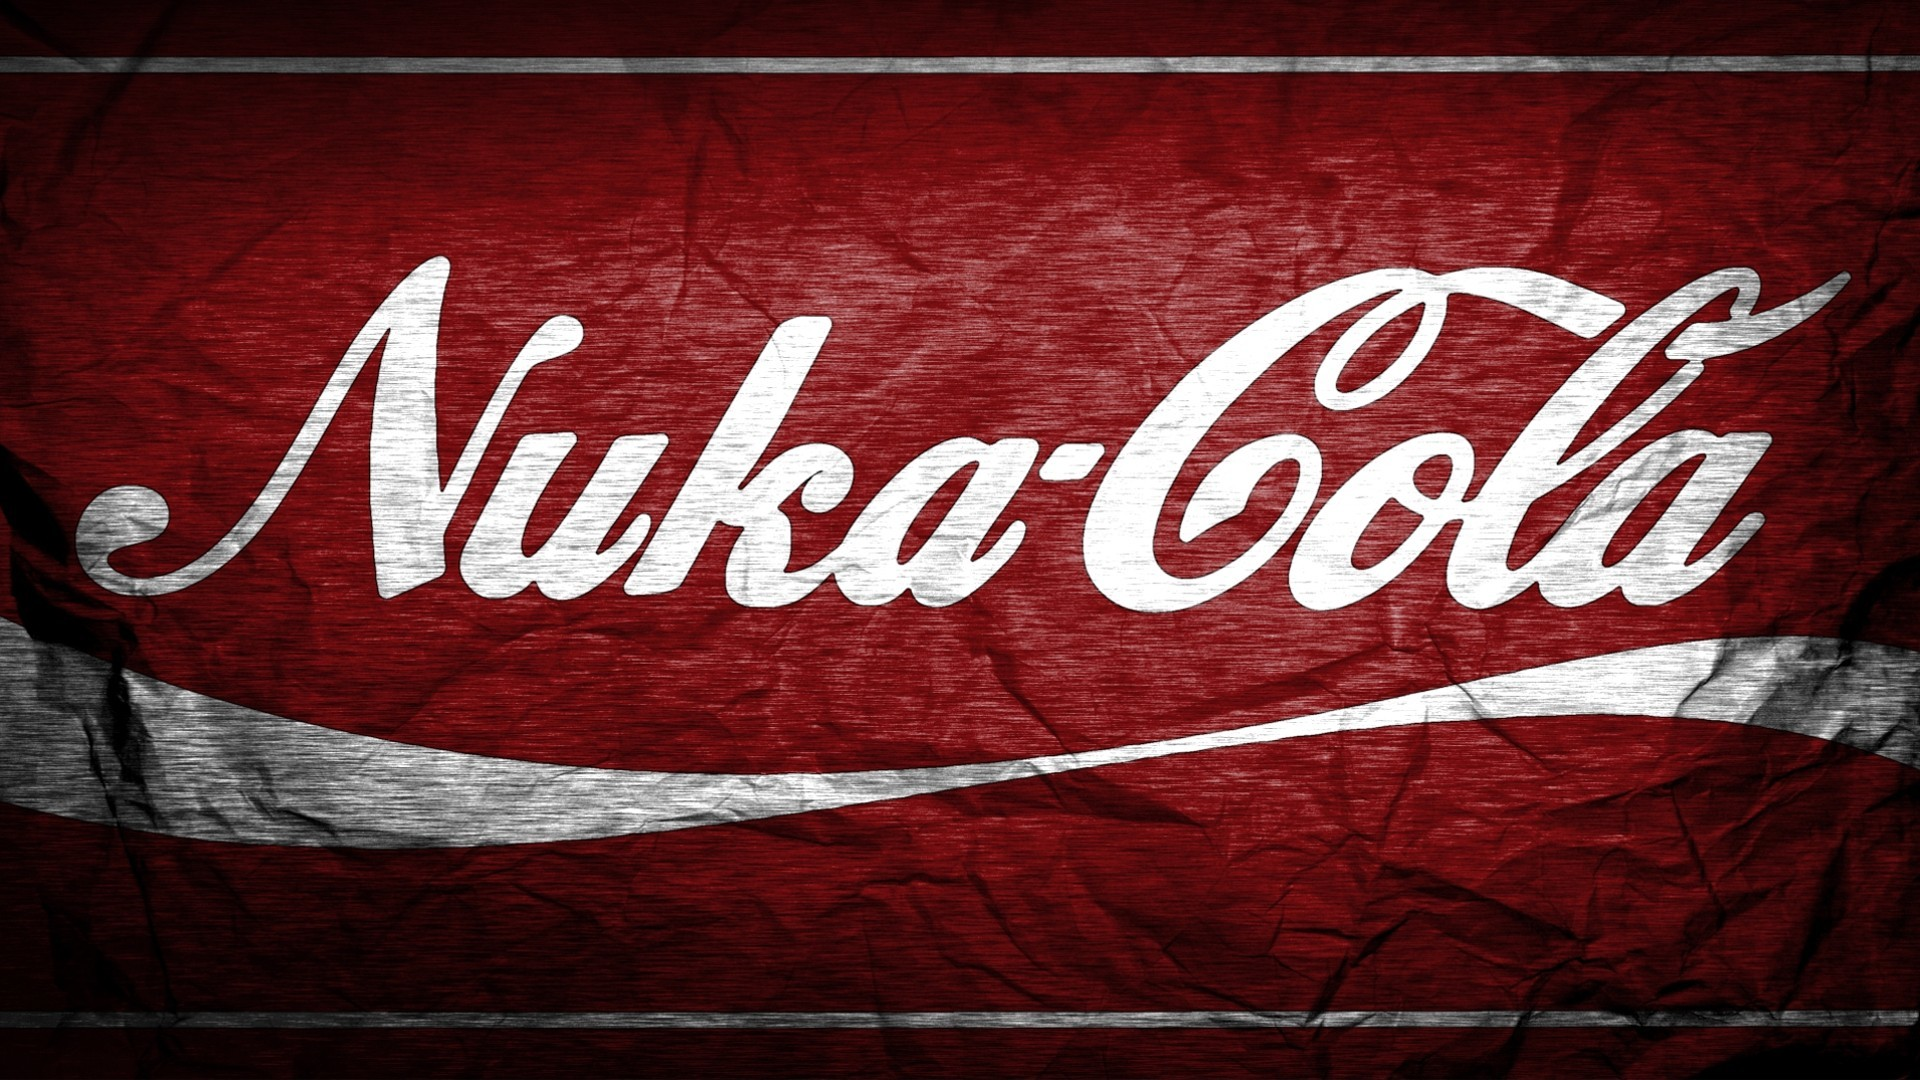 Res: 1920x1080, Video Game - Fallout Fallout 4 Nuka Cola Wallpaper